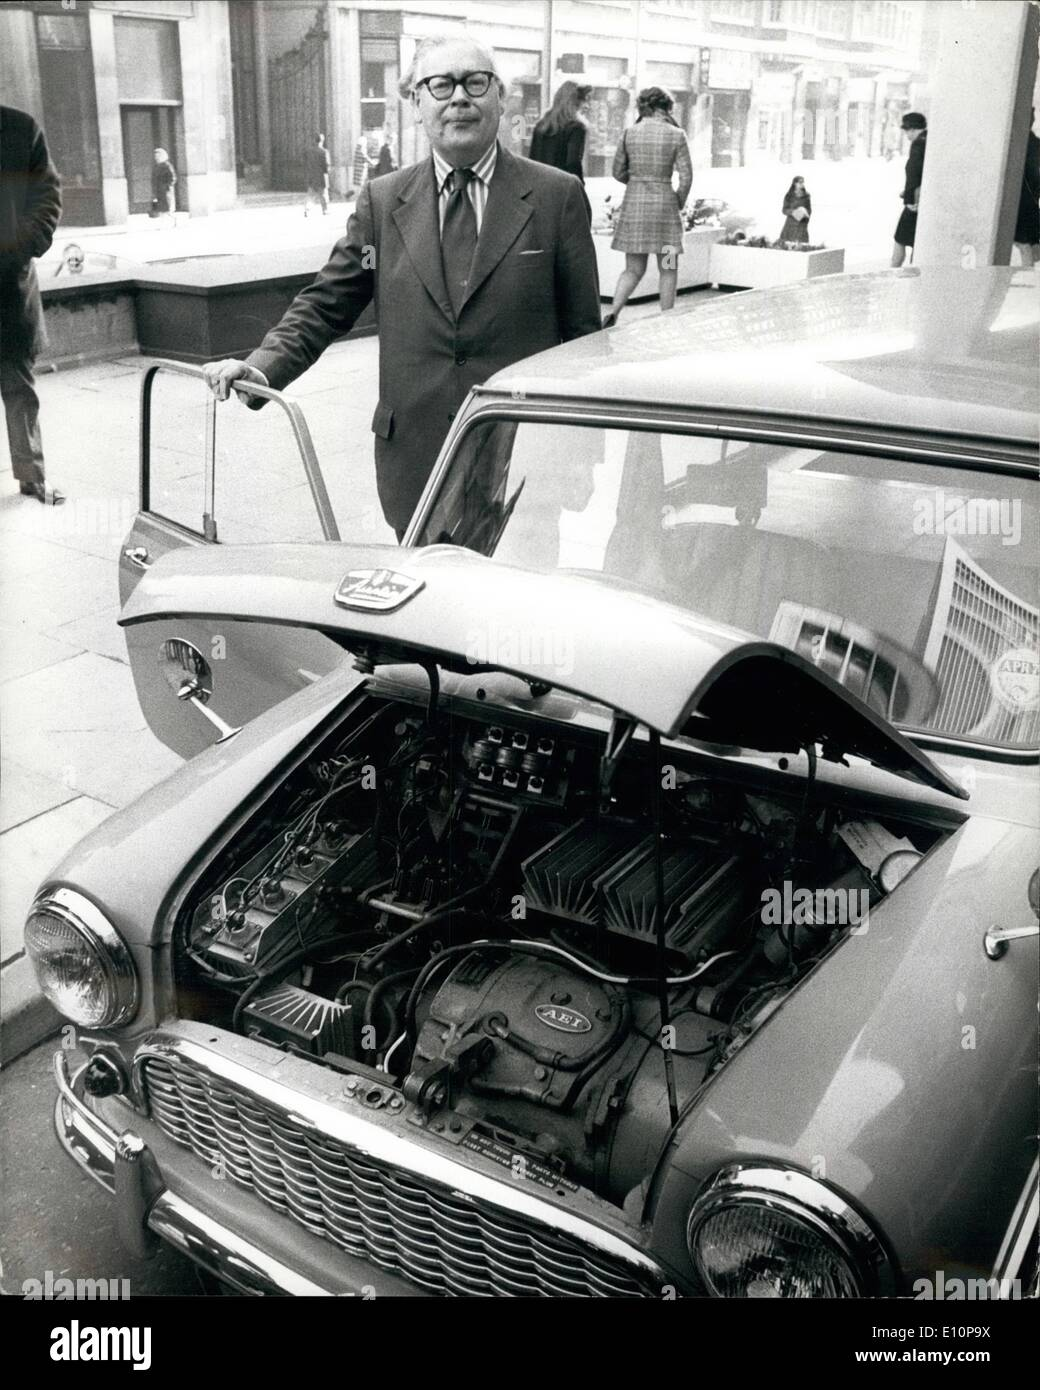 Nov. 11, 1973 - Geoffrey Rippon Tries Out Experimental Electric Mini-Traveller For A Journey To Downing Street: Geoffrey Rippon, Secretary of State for Environment, today took delivery from the Electricity Council of an experimental electric Mini-Traveller for alternative means of transport. The car is powered by batteries and does 25 miles after a charge of 4 hours. It has a top speed of 40 m.p.h. The car has been lent to Mr. Rippon during the present petrol crisis and today used the car to attend a Cabinet meeting at No. 10 Downing Street - Stock Image